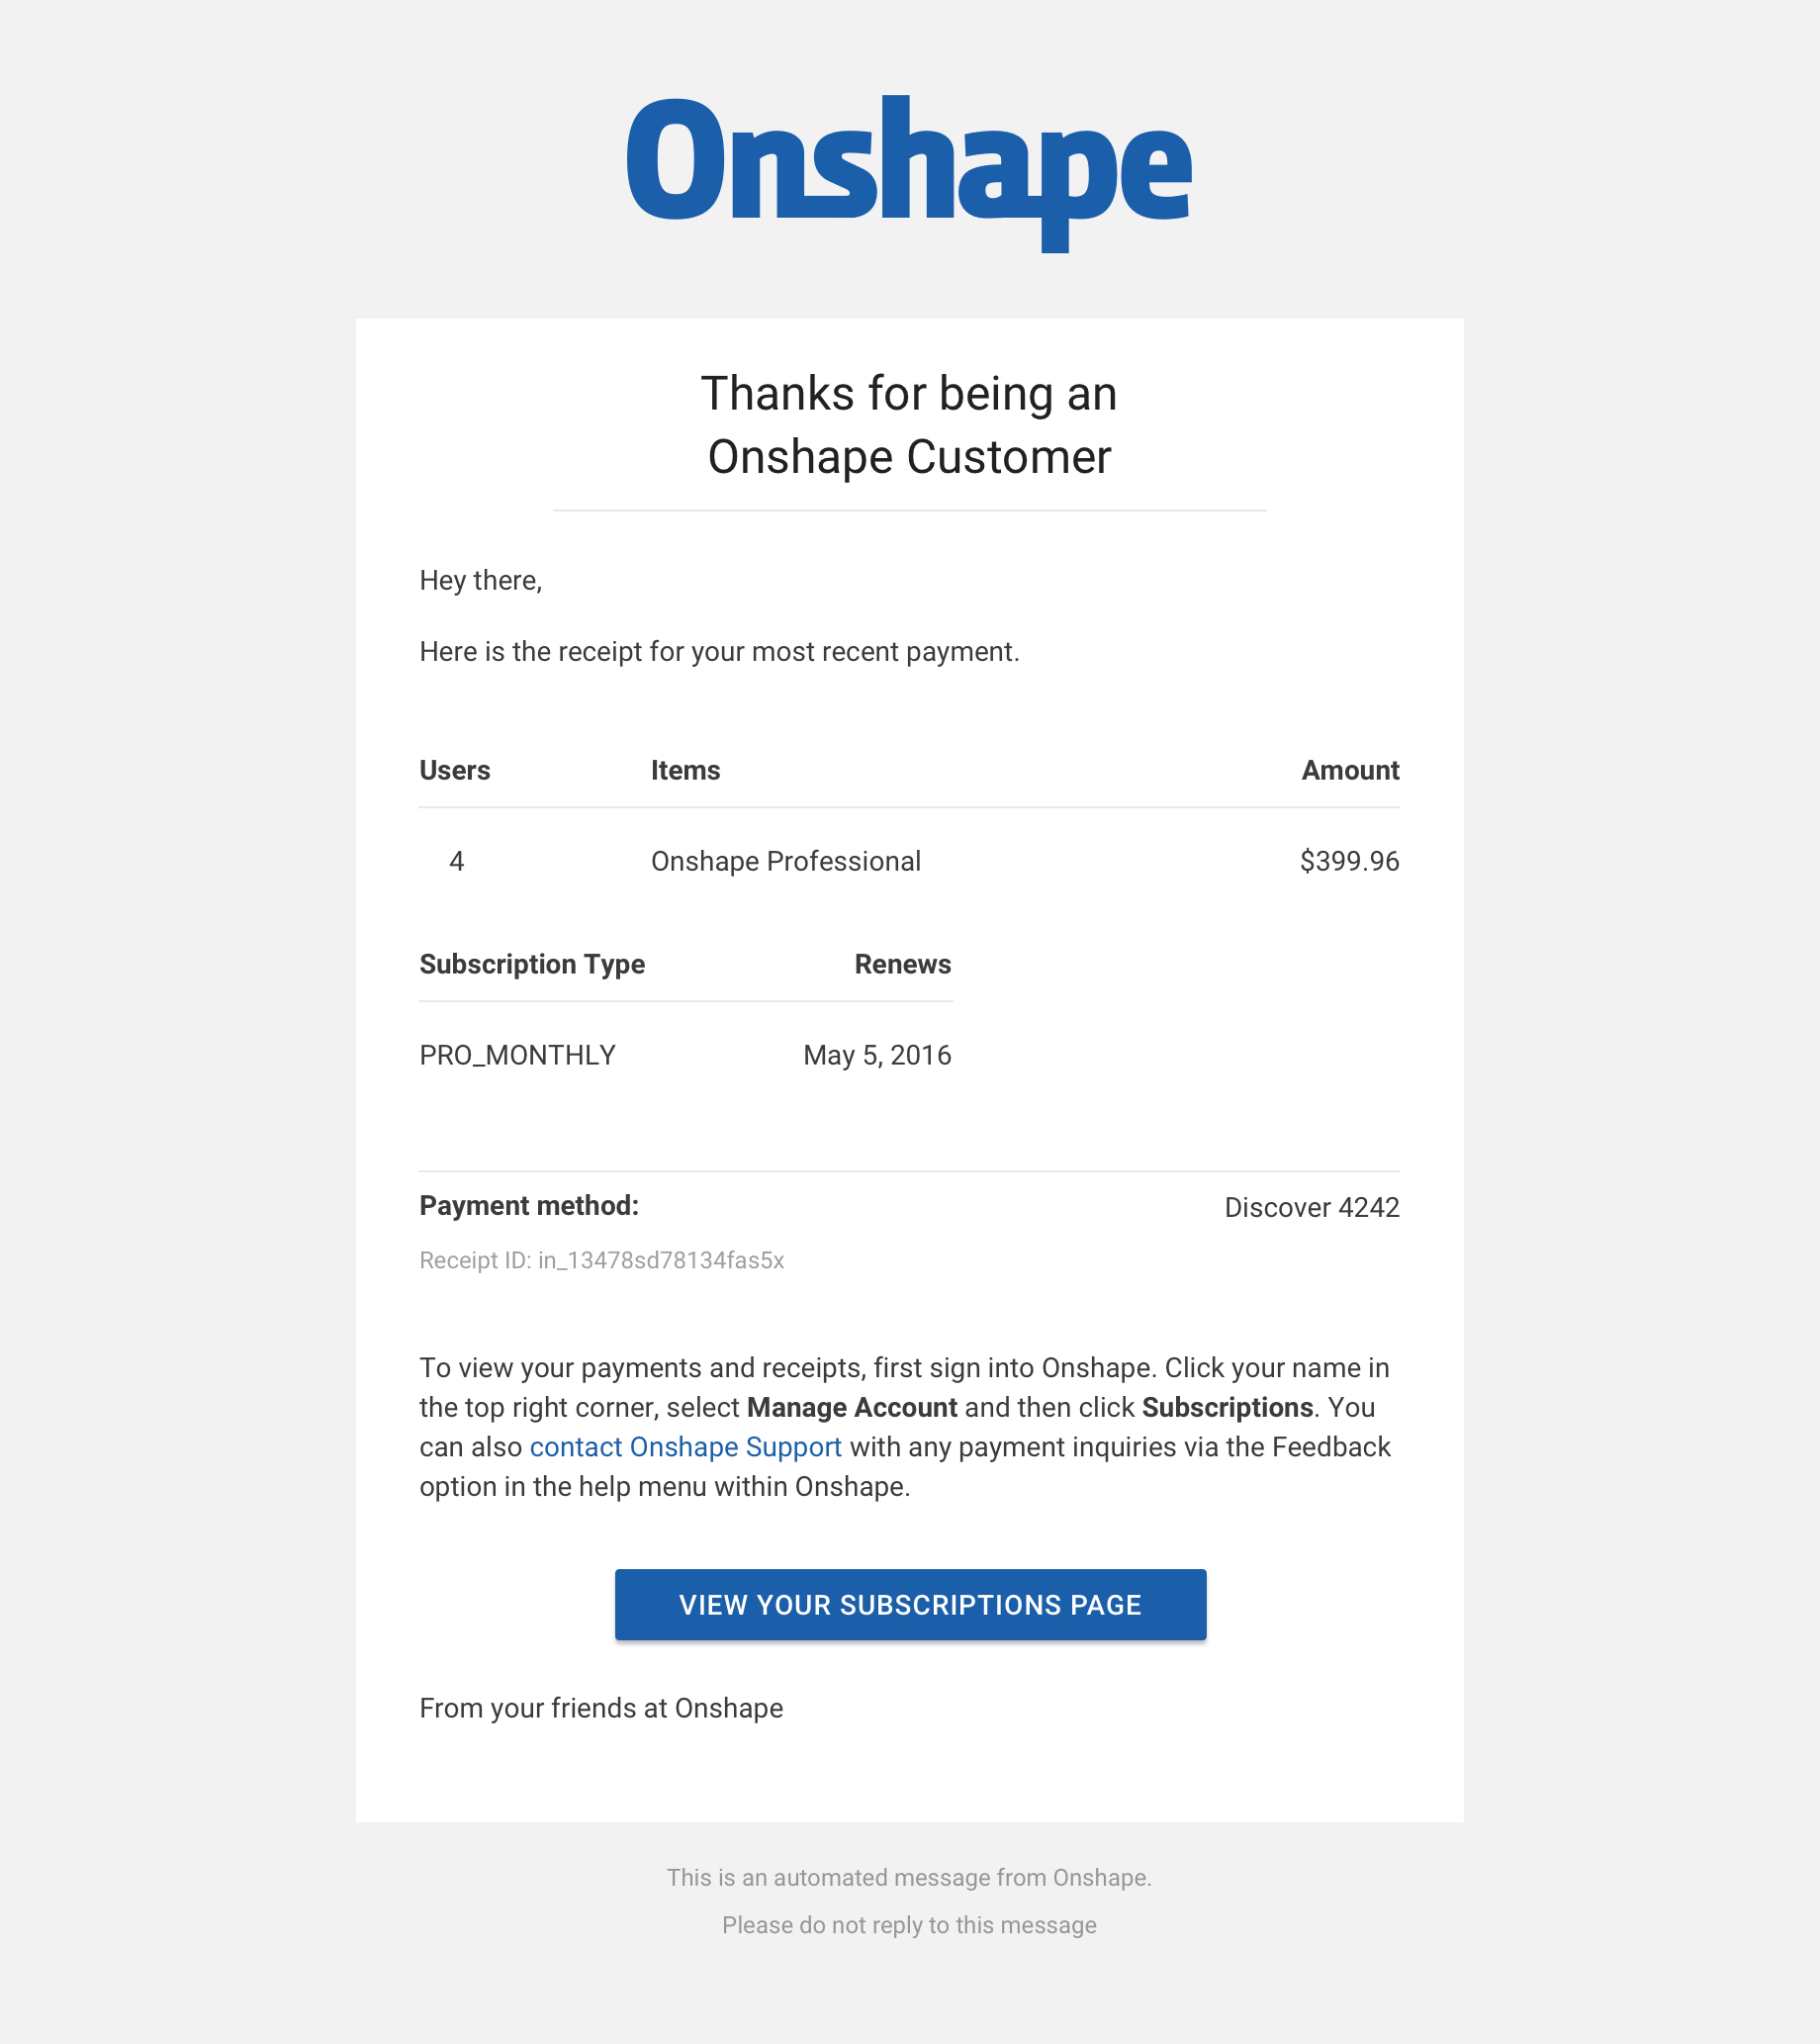 onshape subscription email receipt - Email Receipt